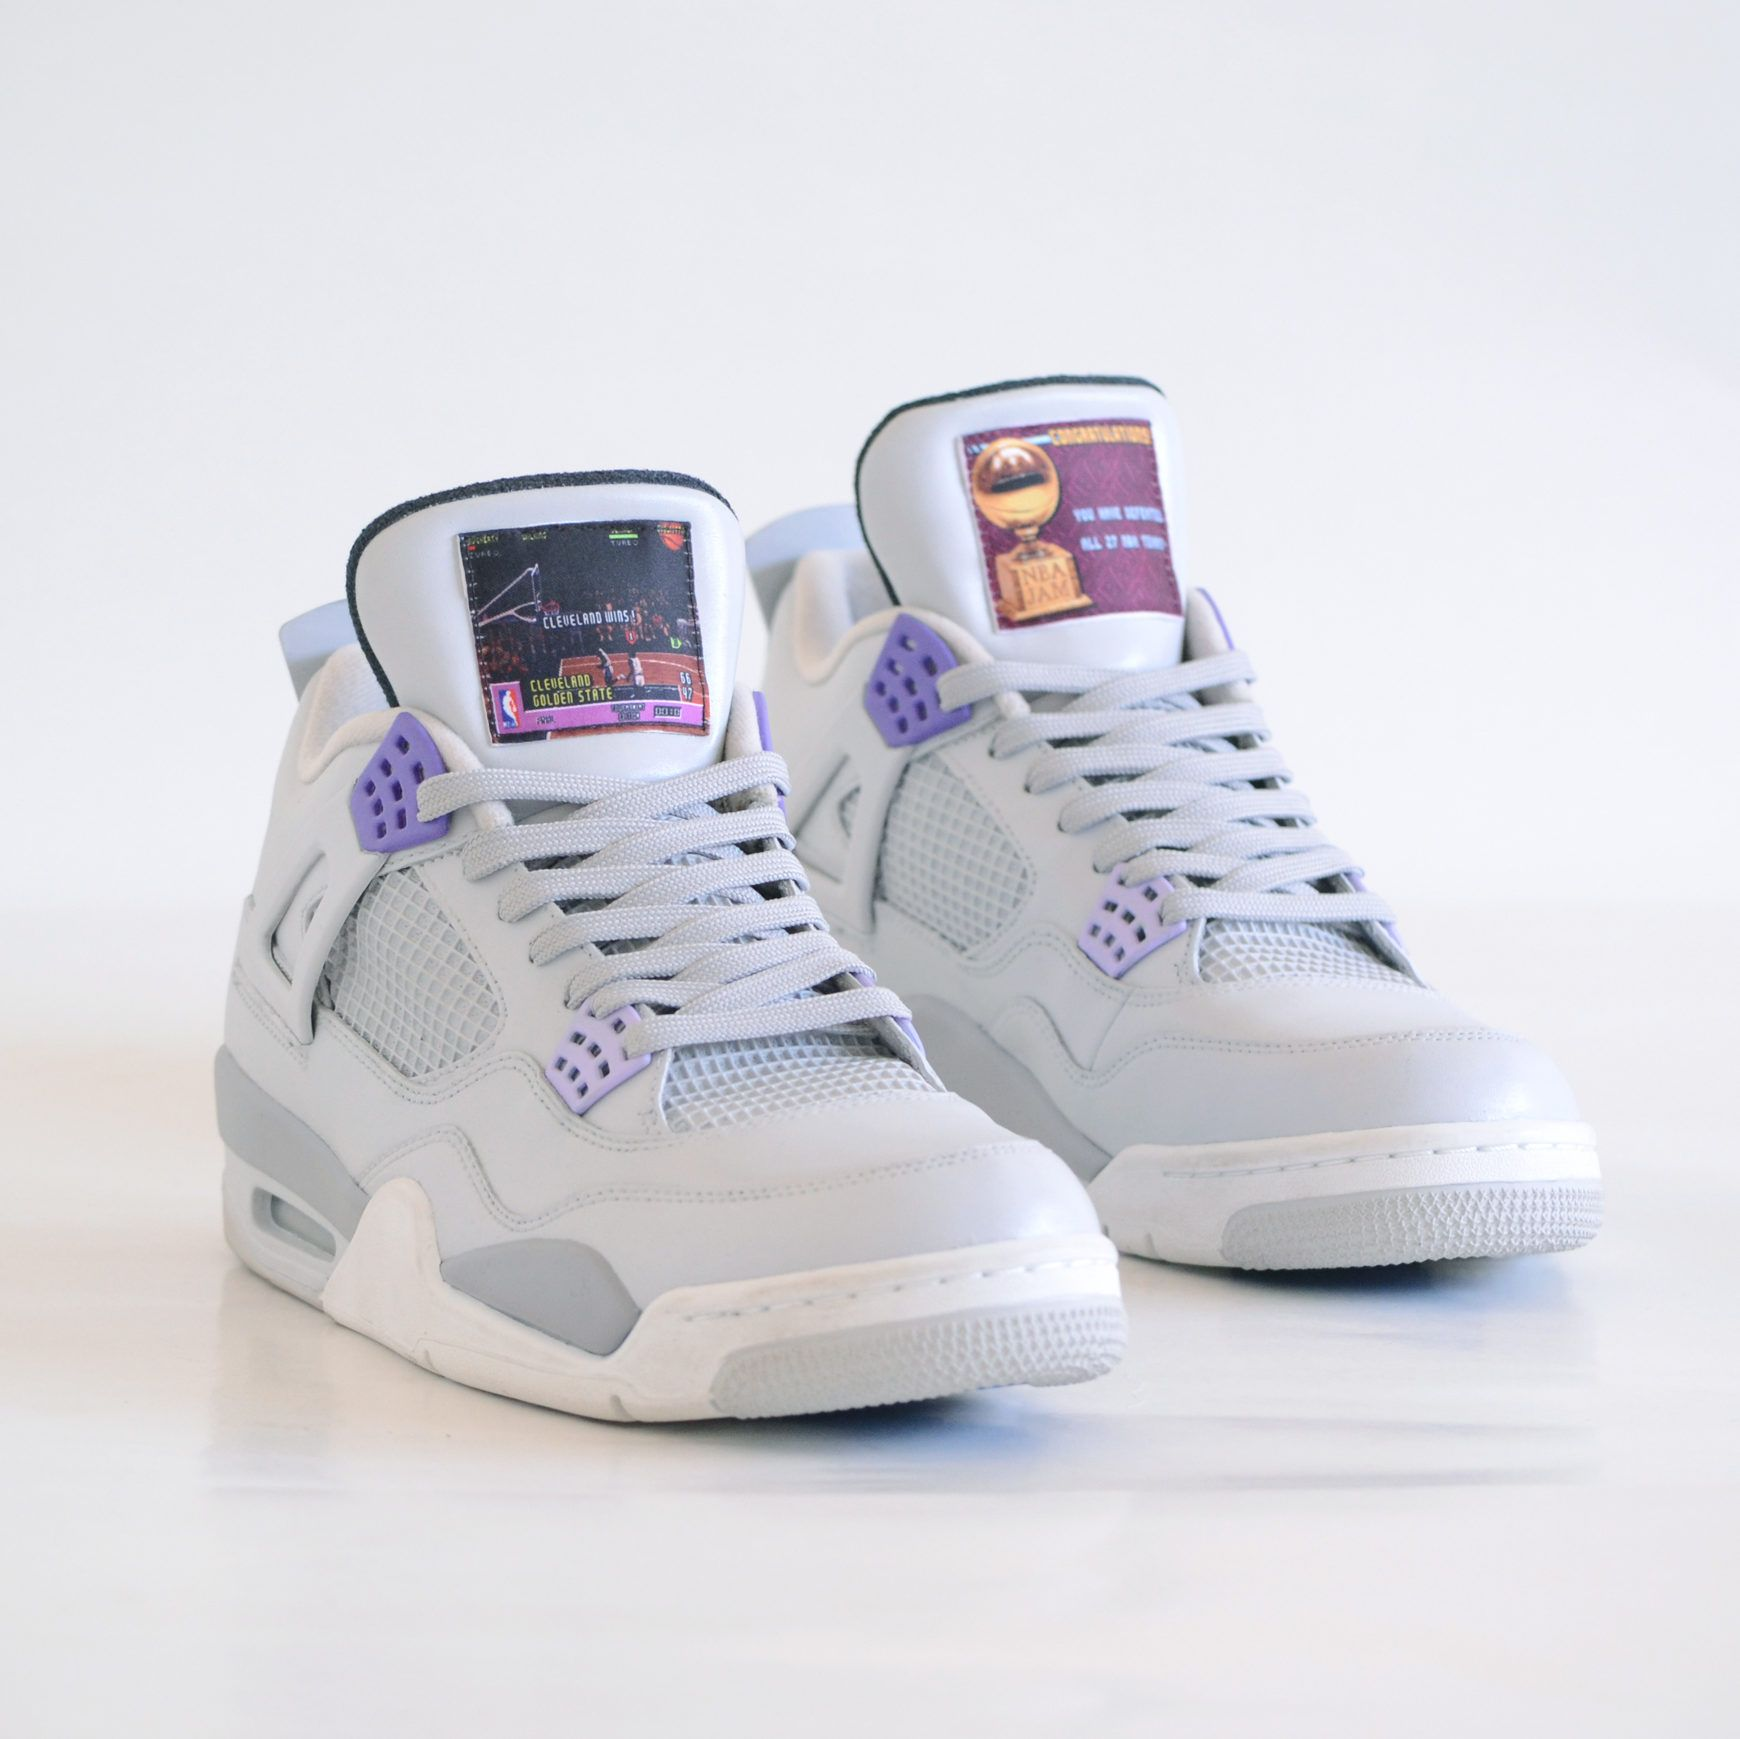 best service fce62 9076a Air Jordan 4 Custom SNES NBA Jam Sneakers